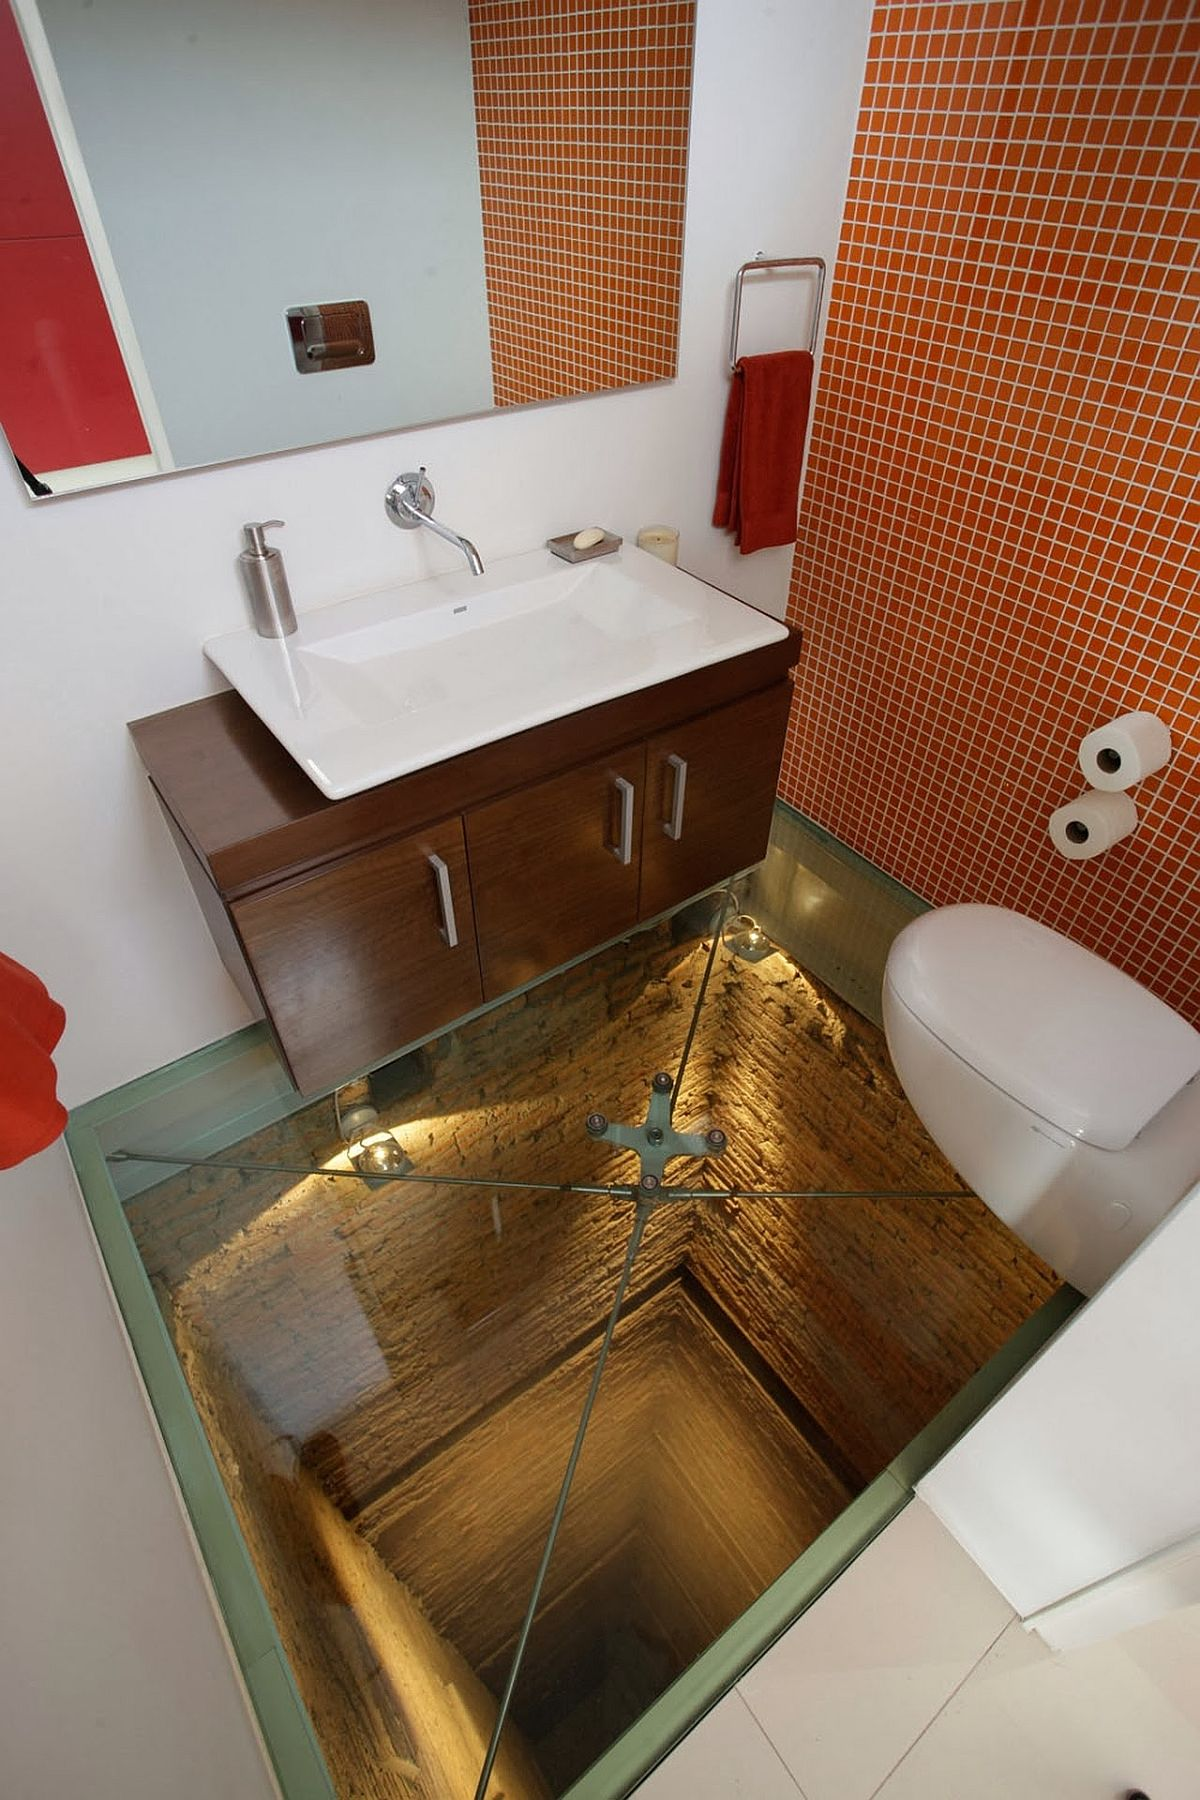 Awe-inspiring bathroom built above 15-story elevator shaft